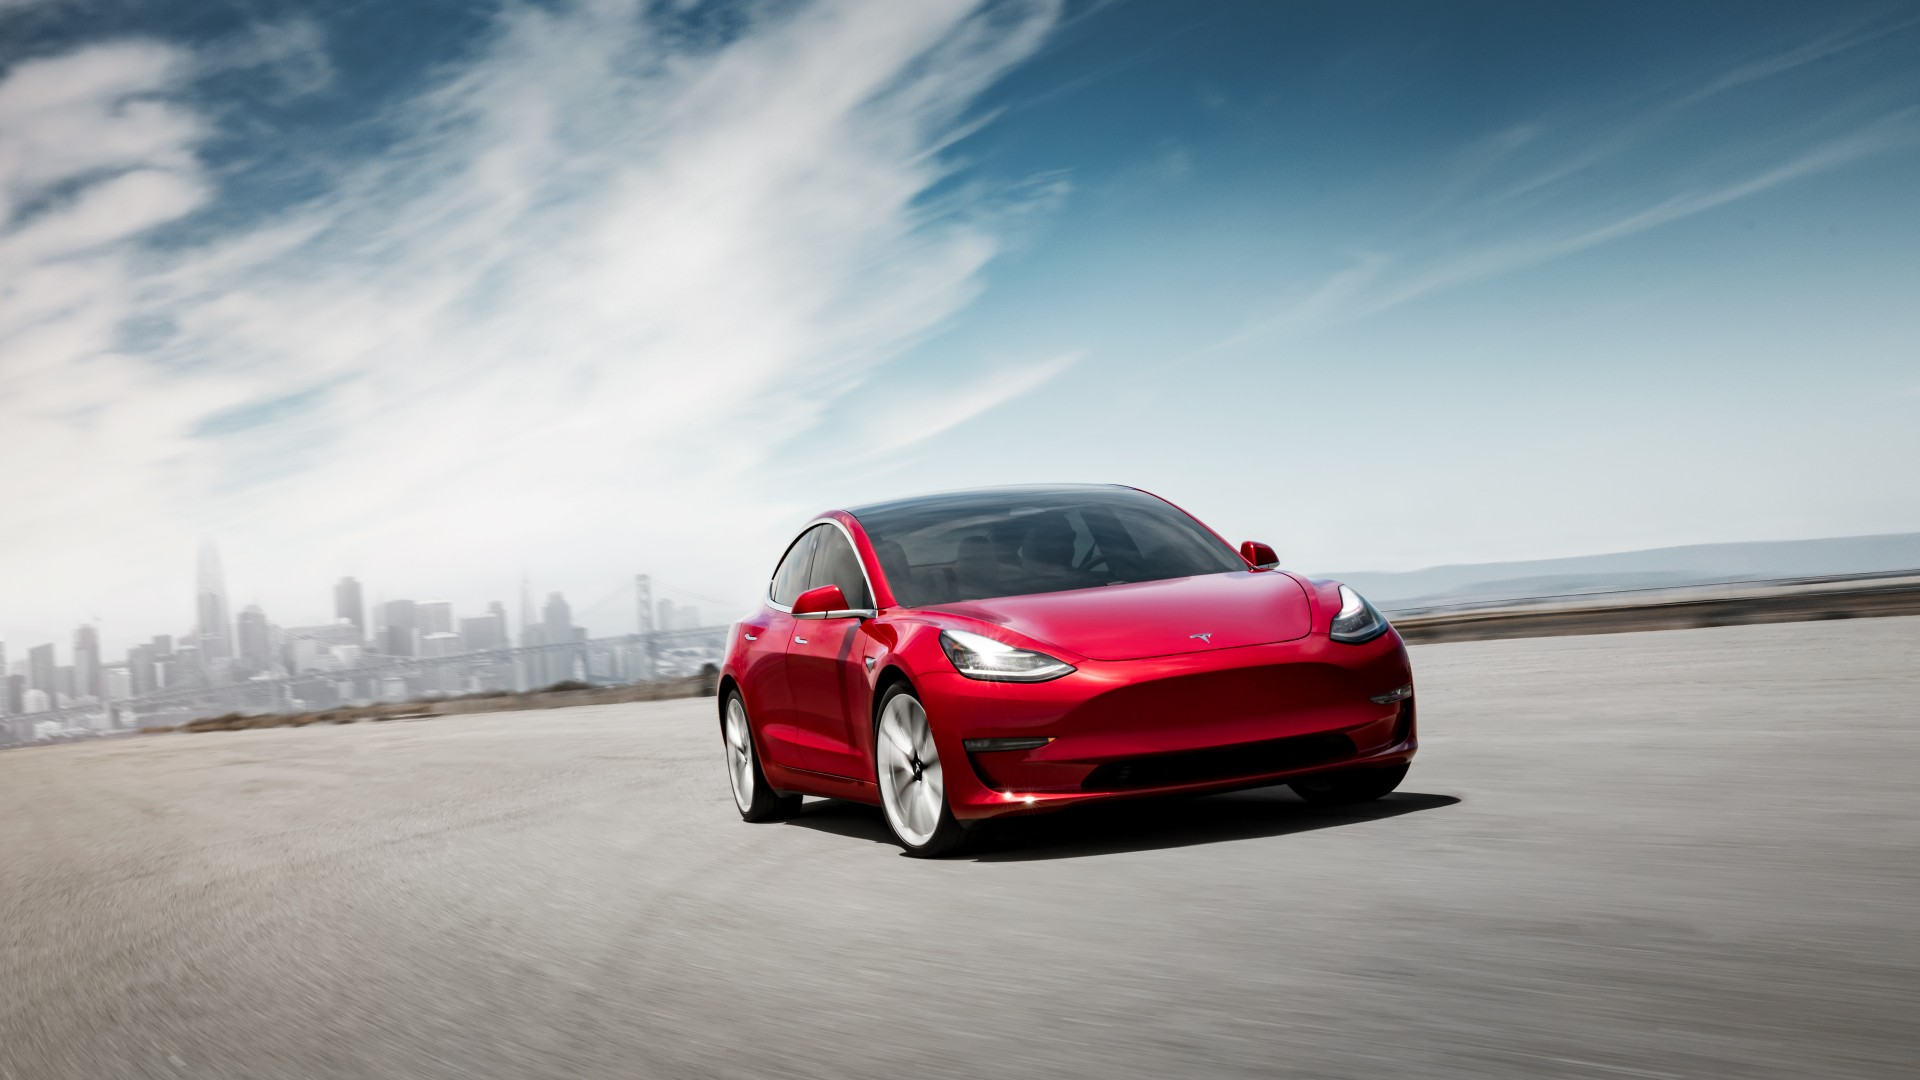 Satisfying, but not so reliable: Tesla Model 3 joins ranks